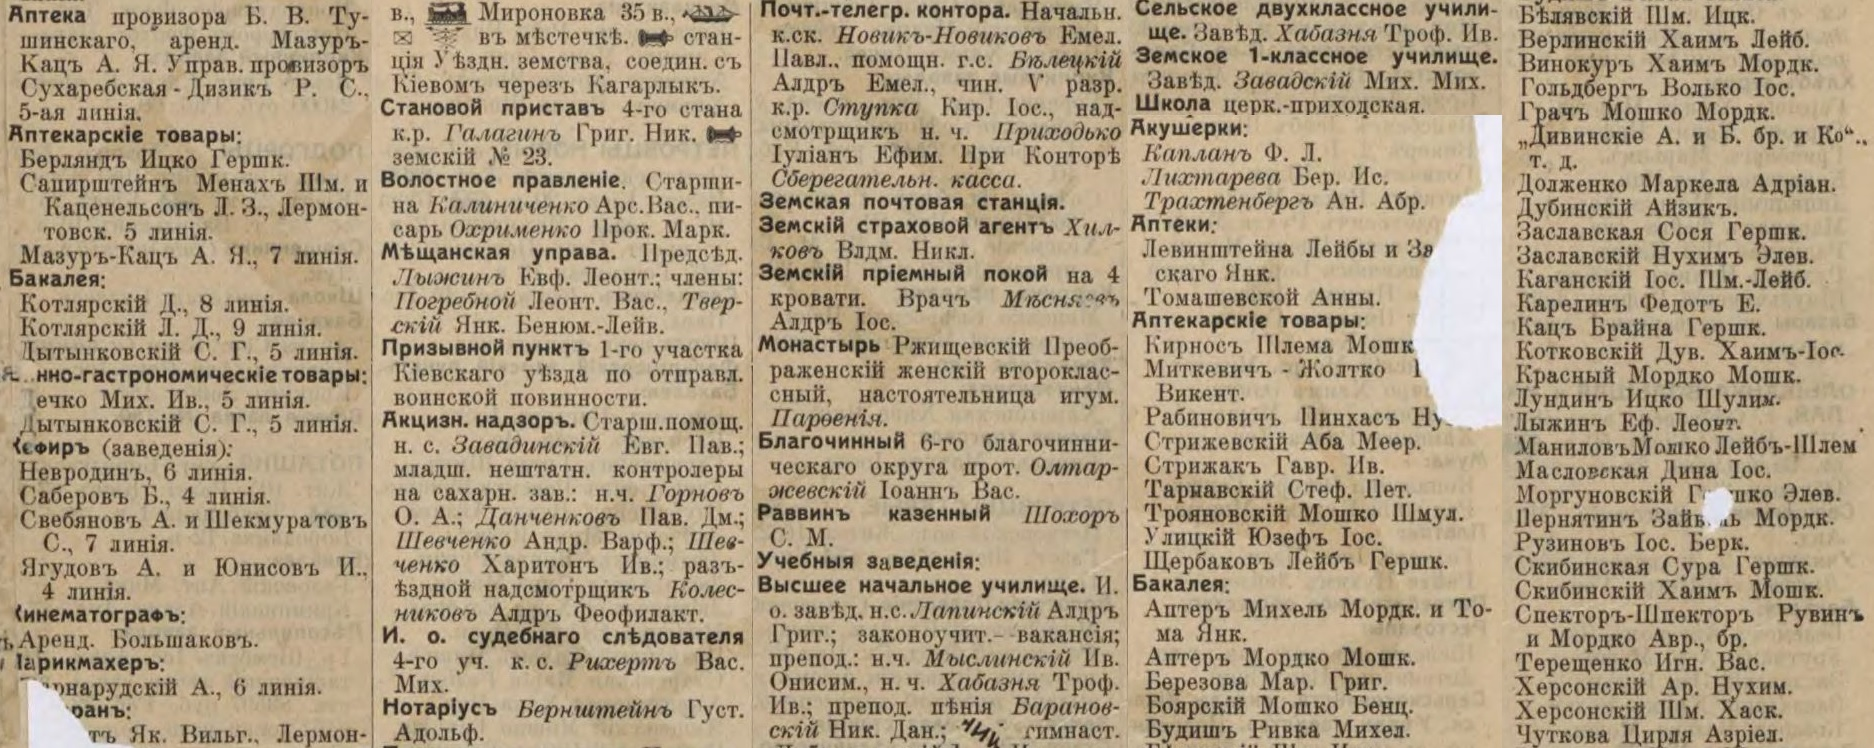 Rzhyshchev entrepreneurs list from Russian Empire Business Directories by 1913